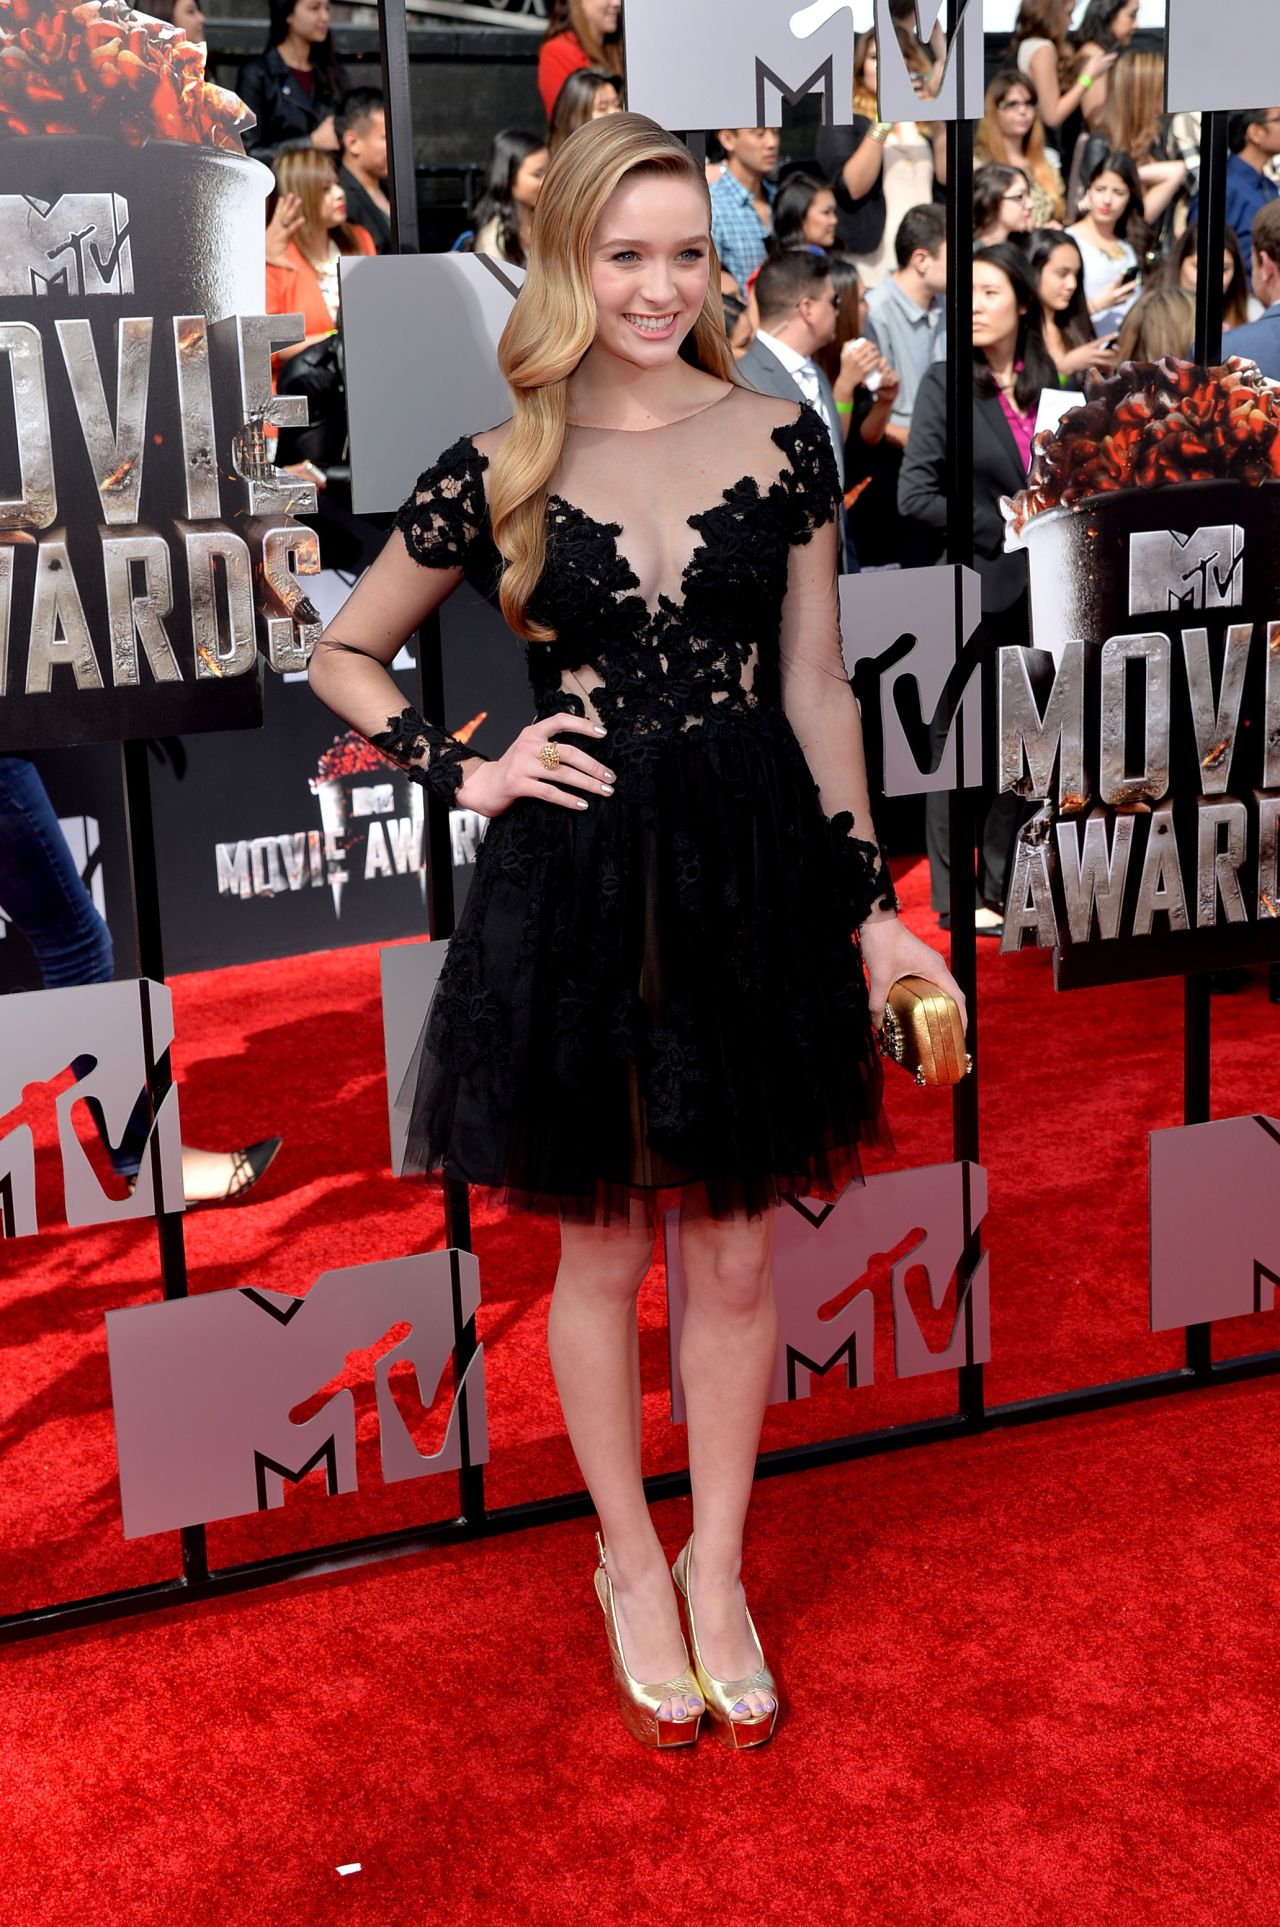 Greer Grammer - 2014 MTV Movie Awards